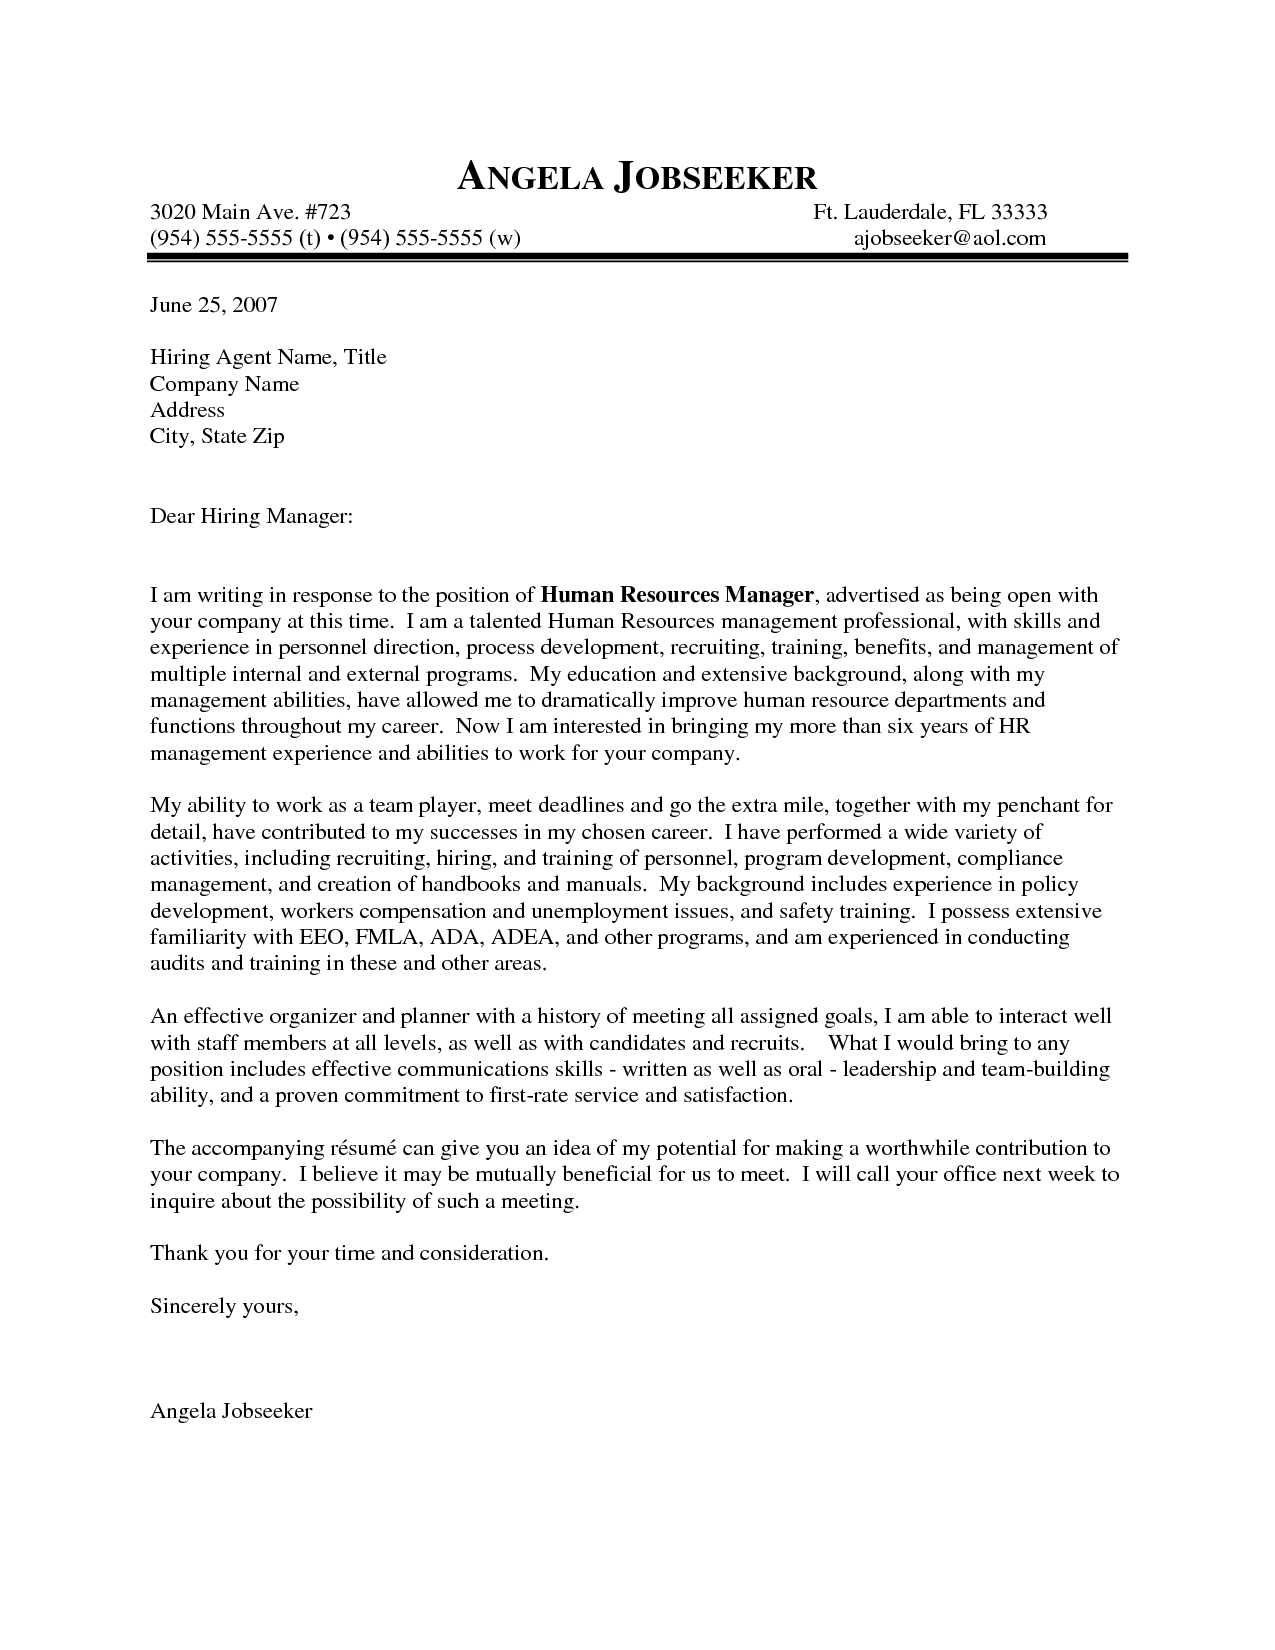 Examples Of Cover Letter For Resume Outstanding Cover Letter Examples  Hr Manager Cover Letter